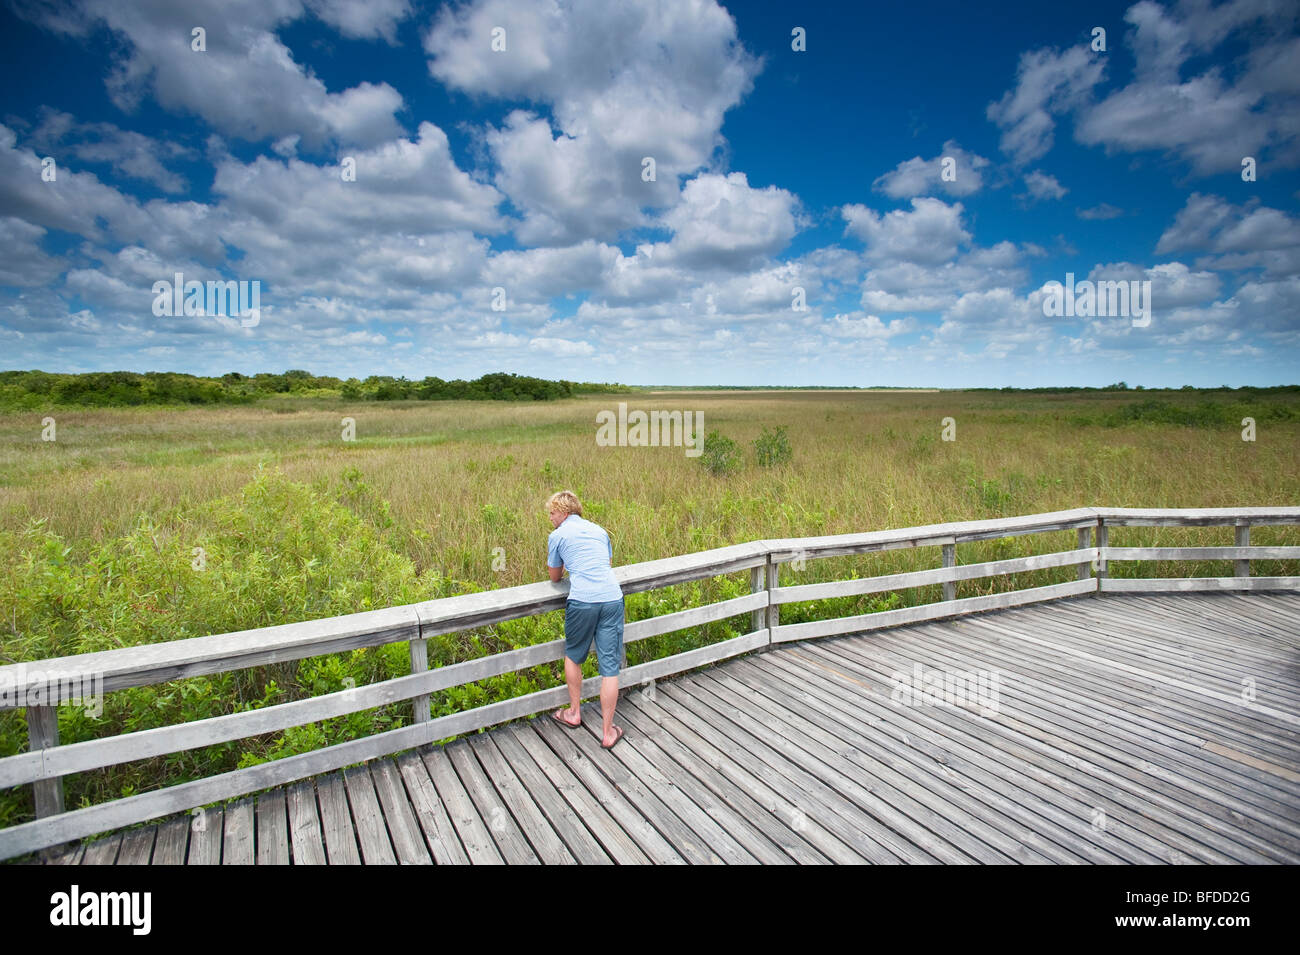 A man pauses during a hike to lean against a wooden railing in Everglades National Park, Florida. - Stock Image